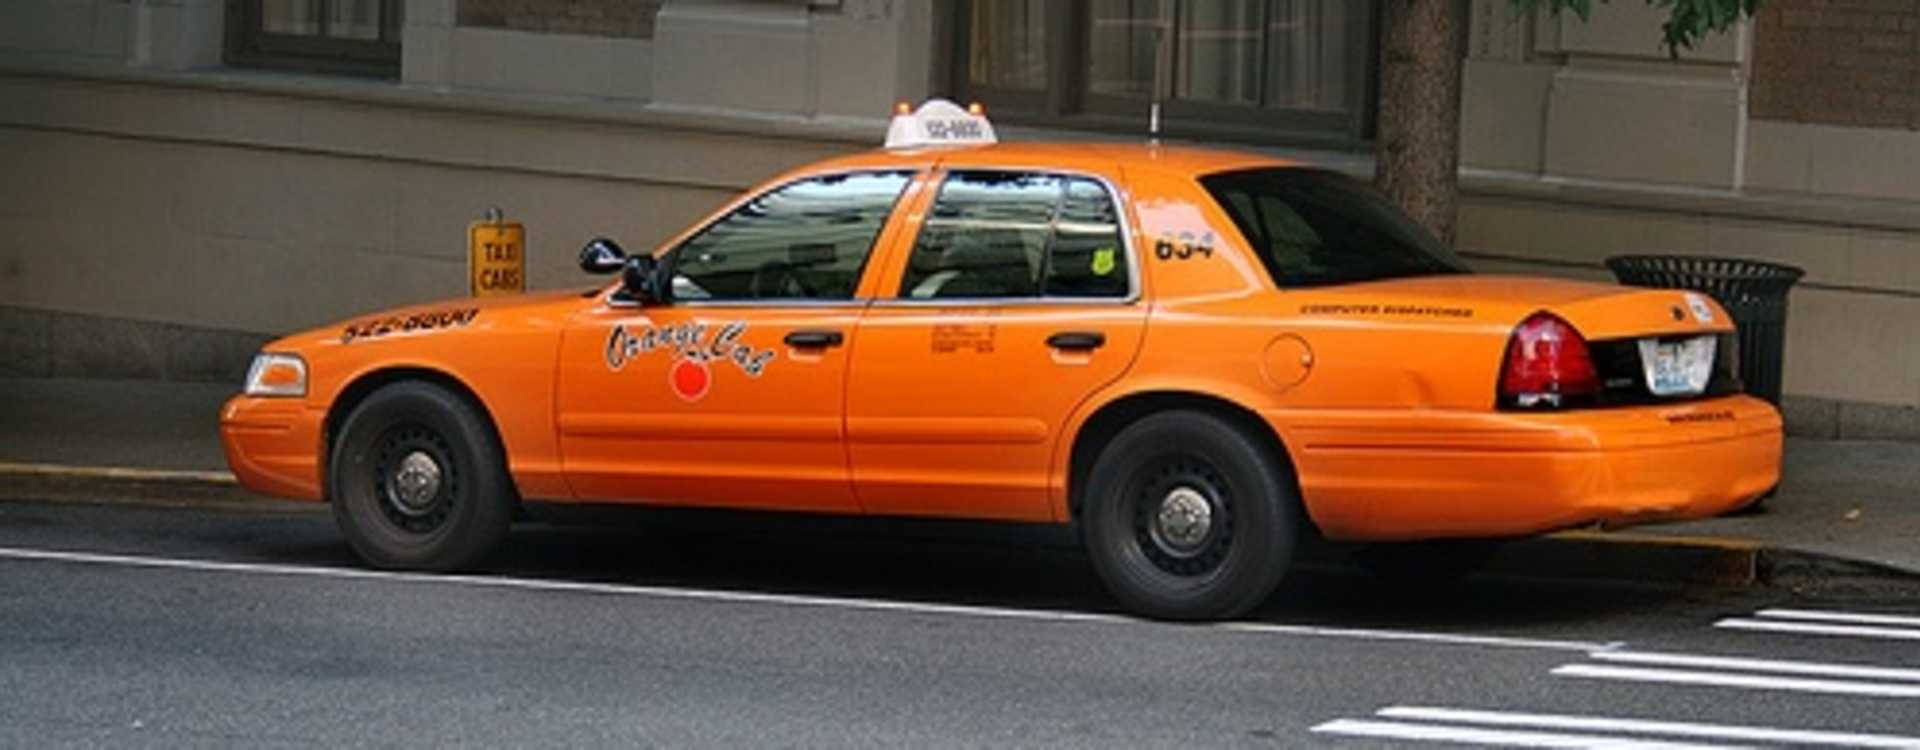 Orange_Cab_Company-2.jpg